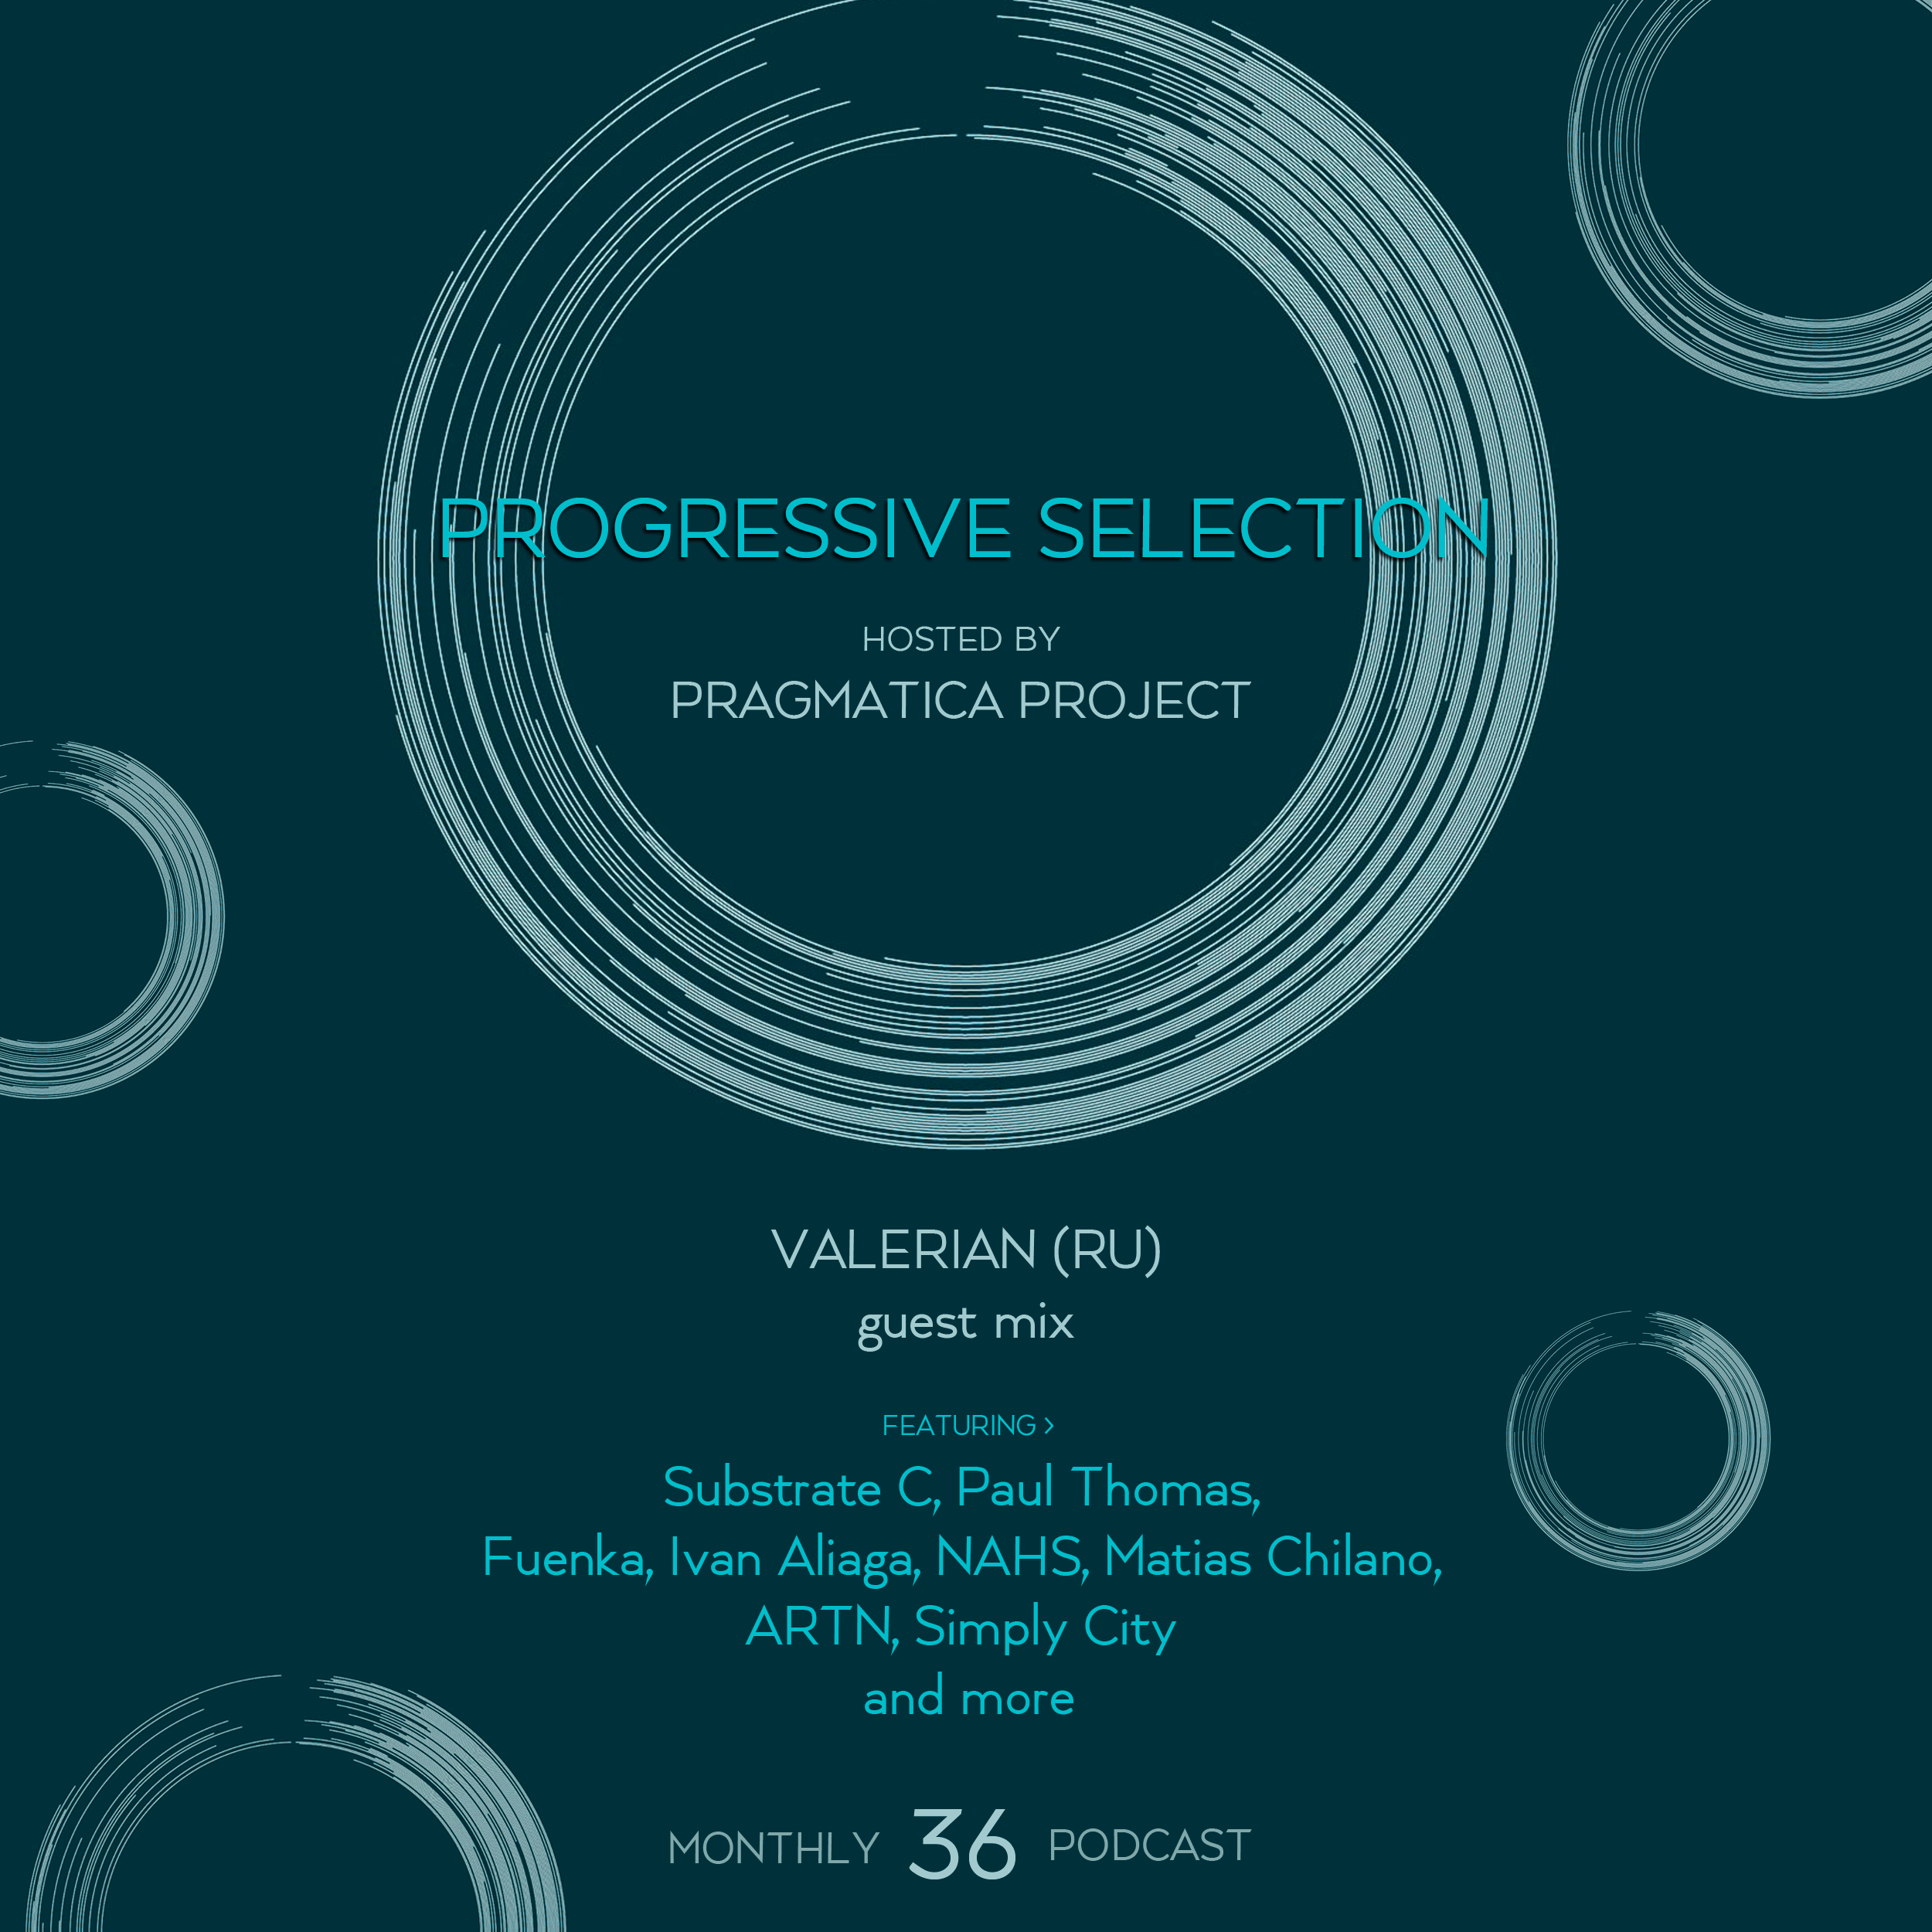 Progressive Selection by Pragmatica Project